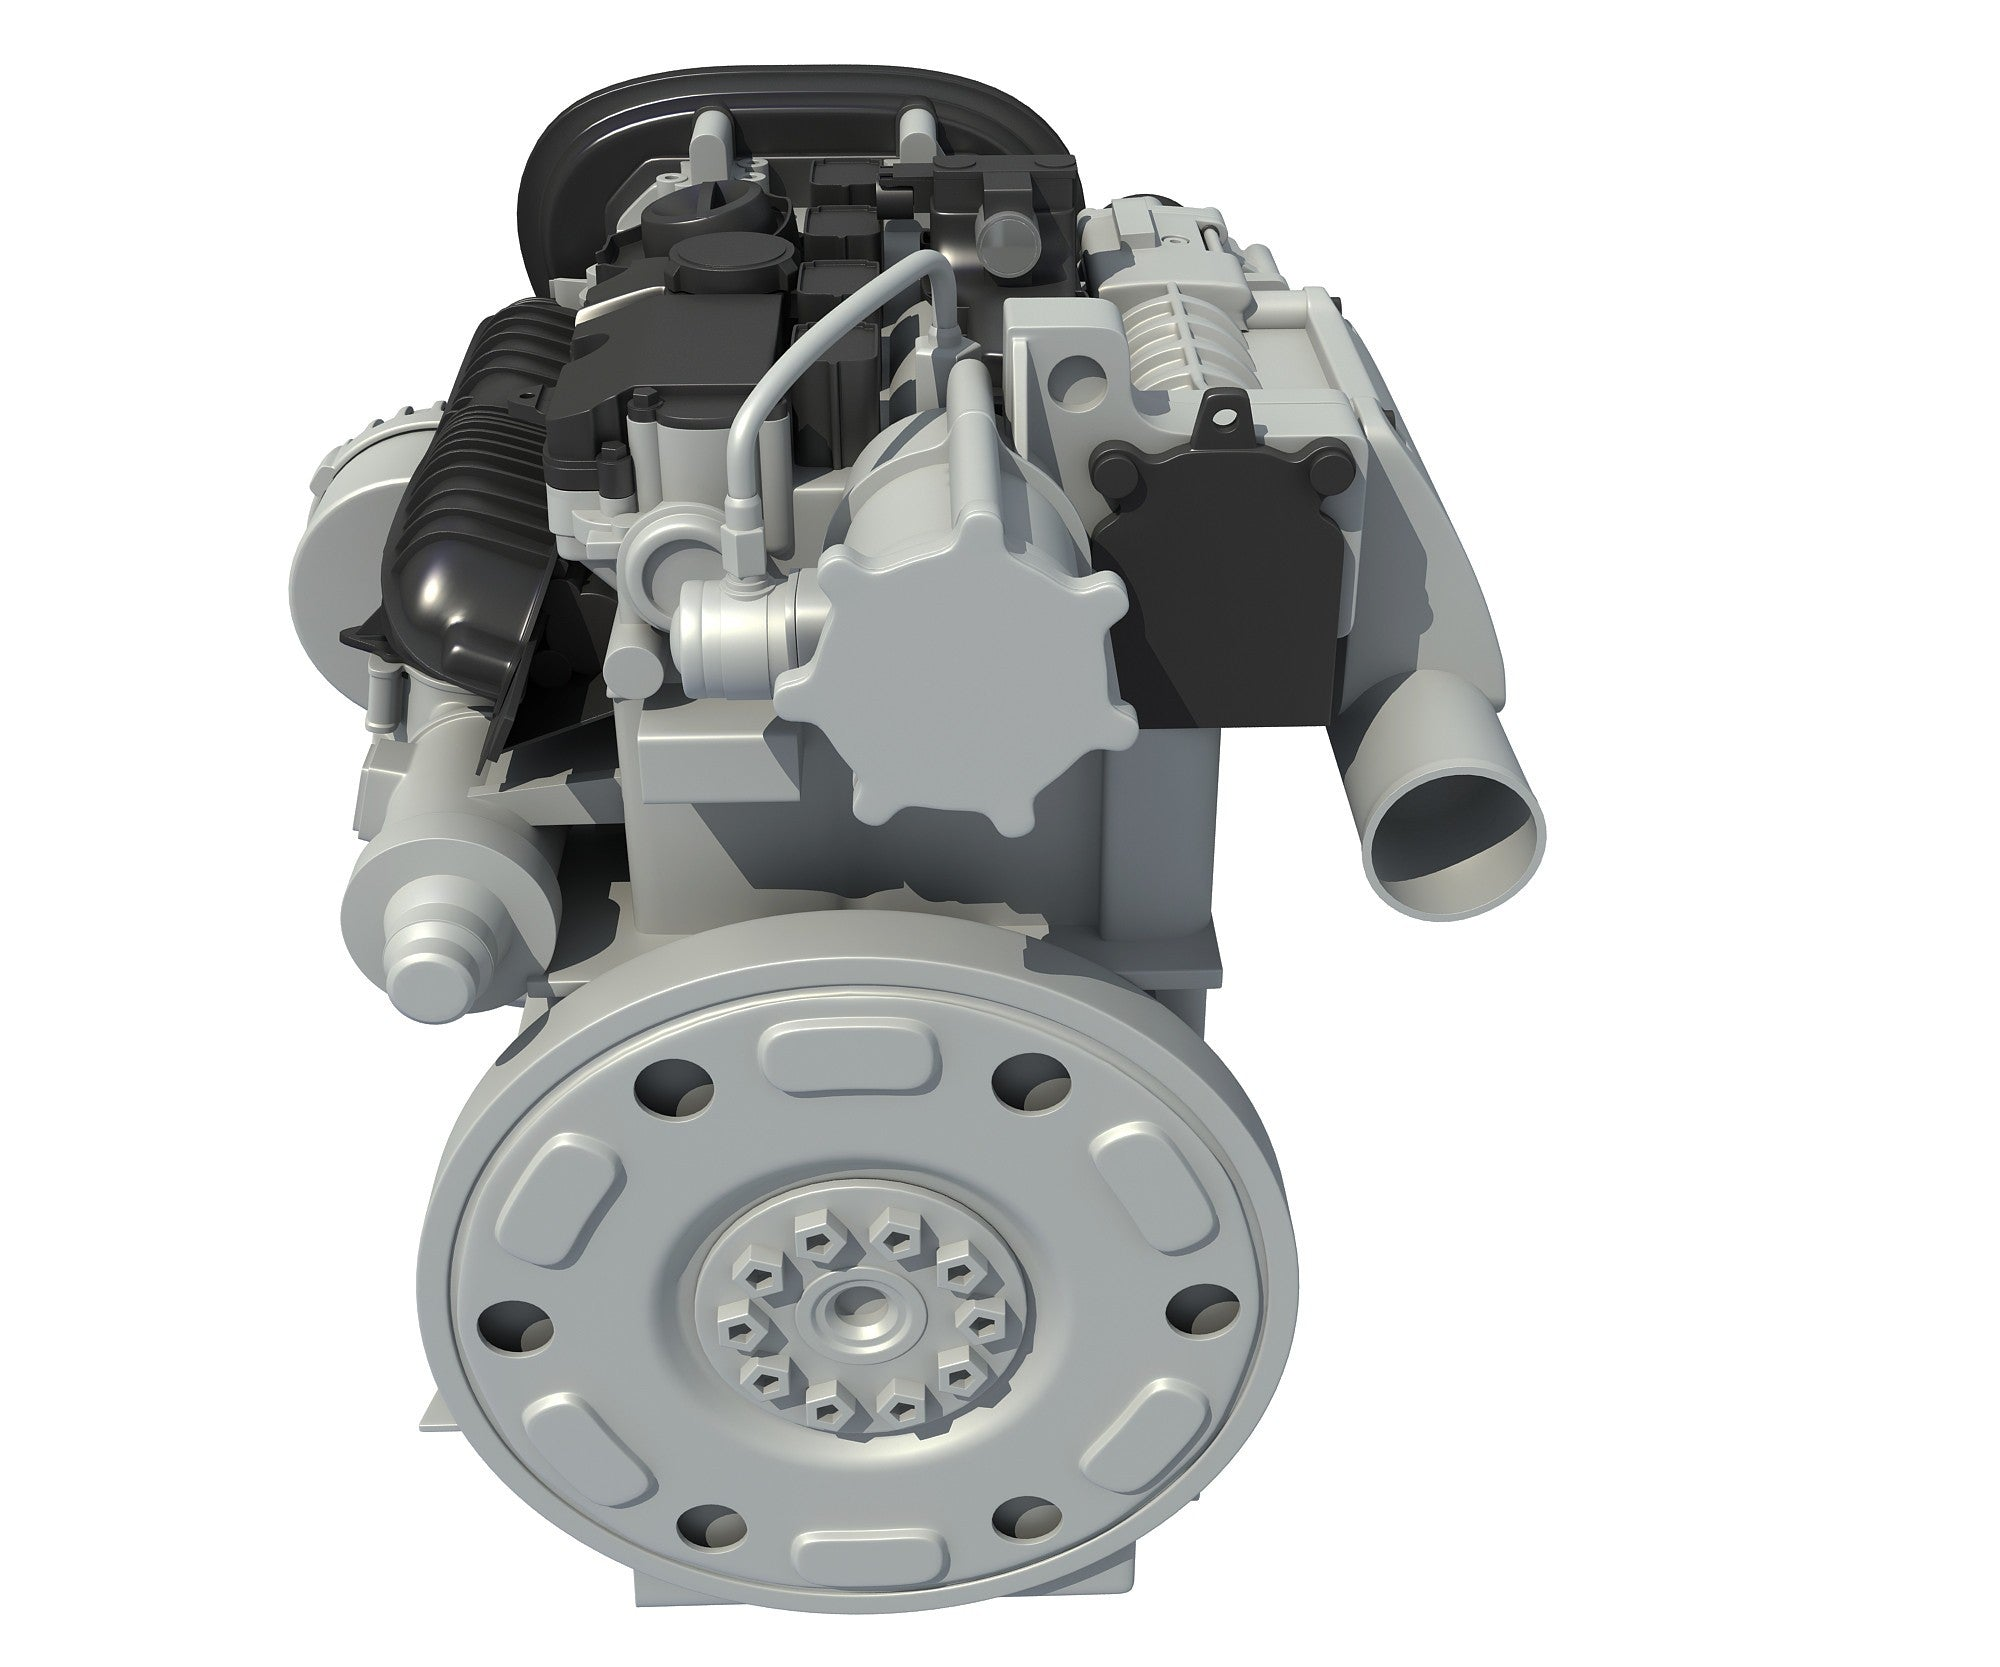 3D Car Engine Model